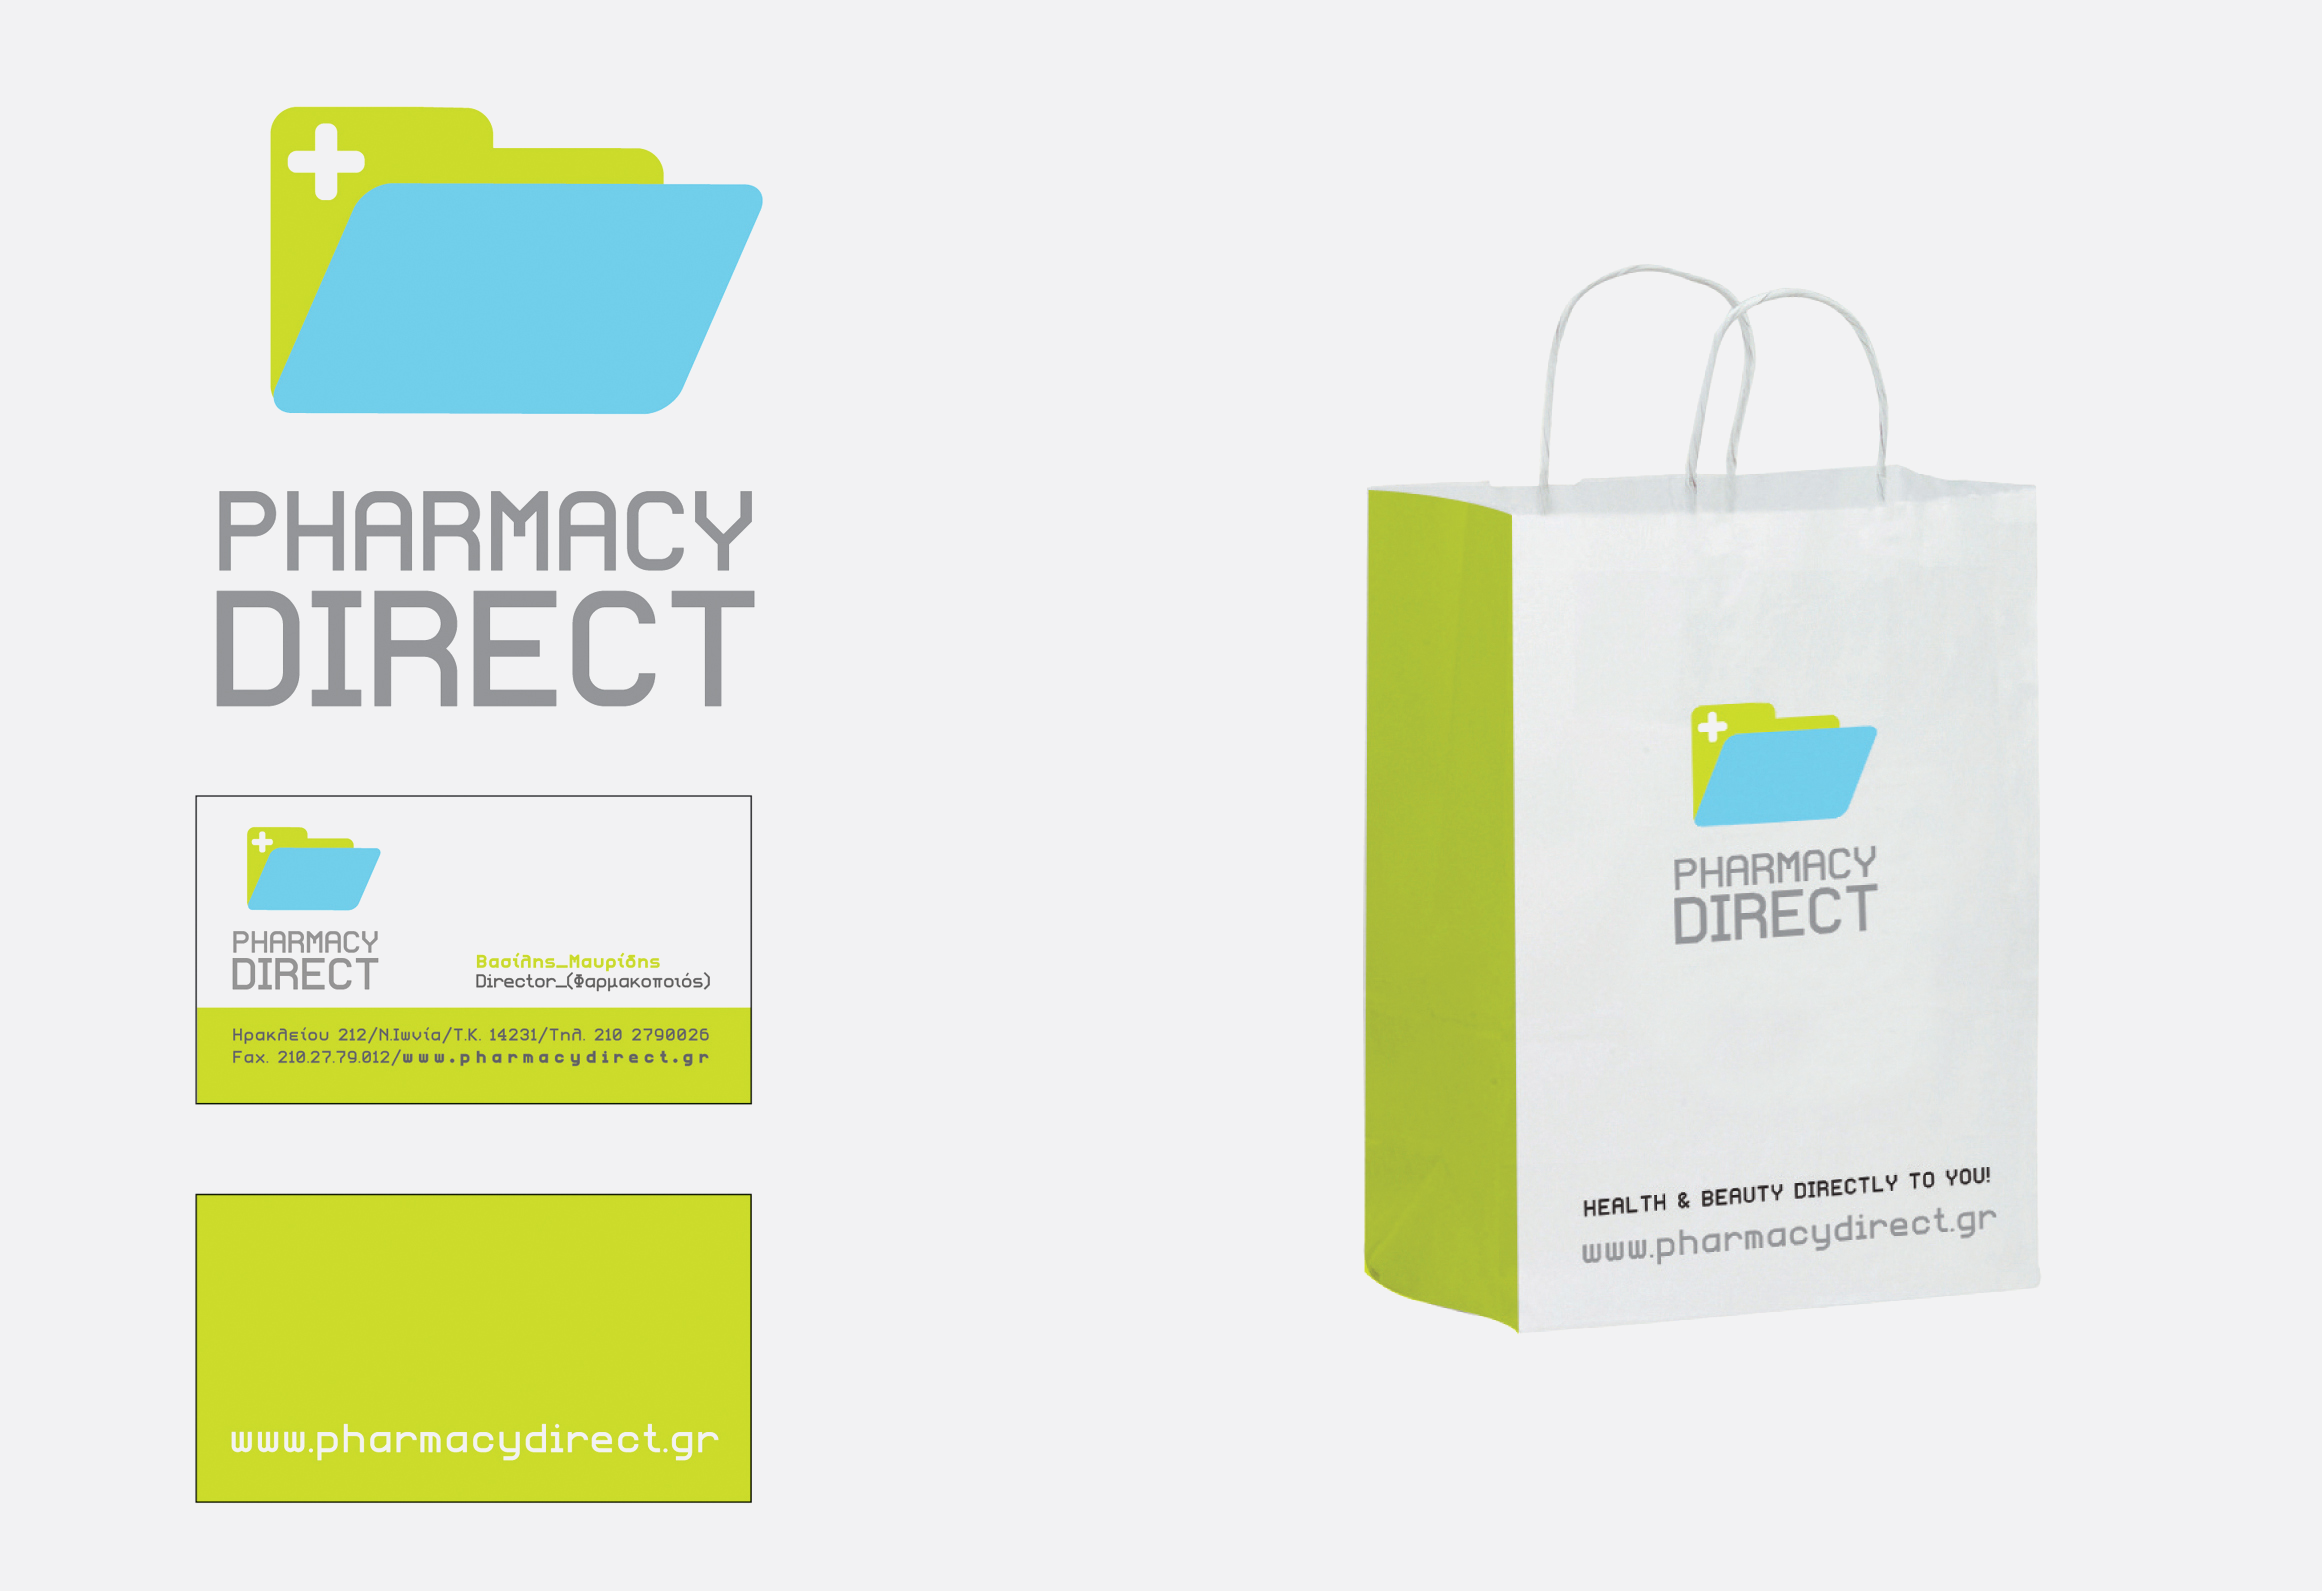 Pharmacy direct